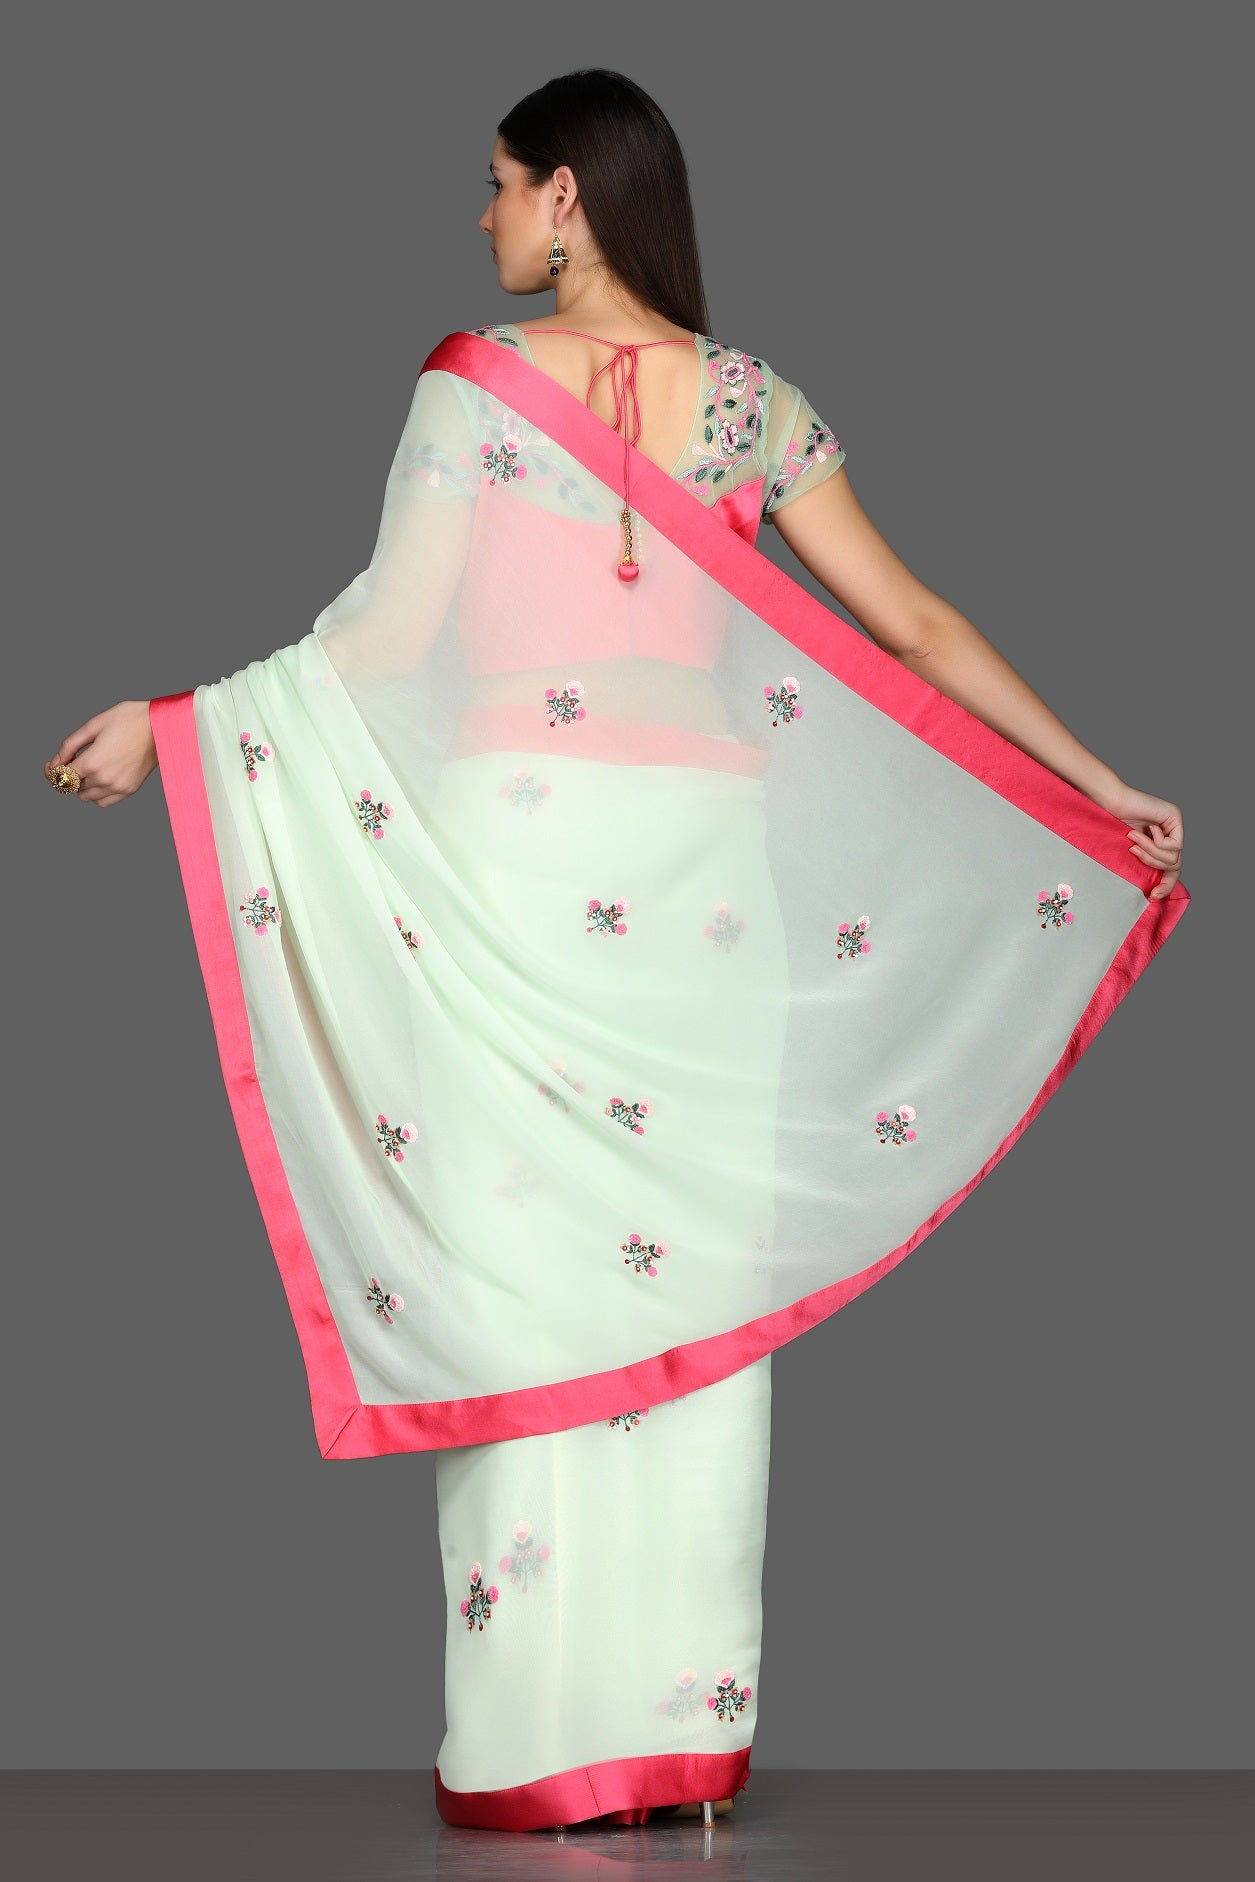 Buy elegant mint green embroidered georgette sare online in USA with pink sheer saree blouse. Make a fashion statement at weddings with stunning designer sarees, embroidered sarees with blouse, wedding sarees from Pure Elegance Indian fashion store in USA.-back